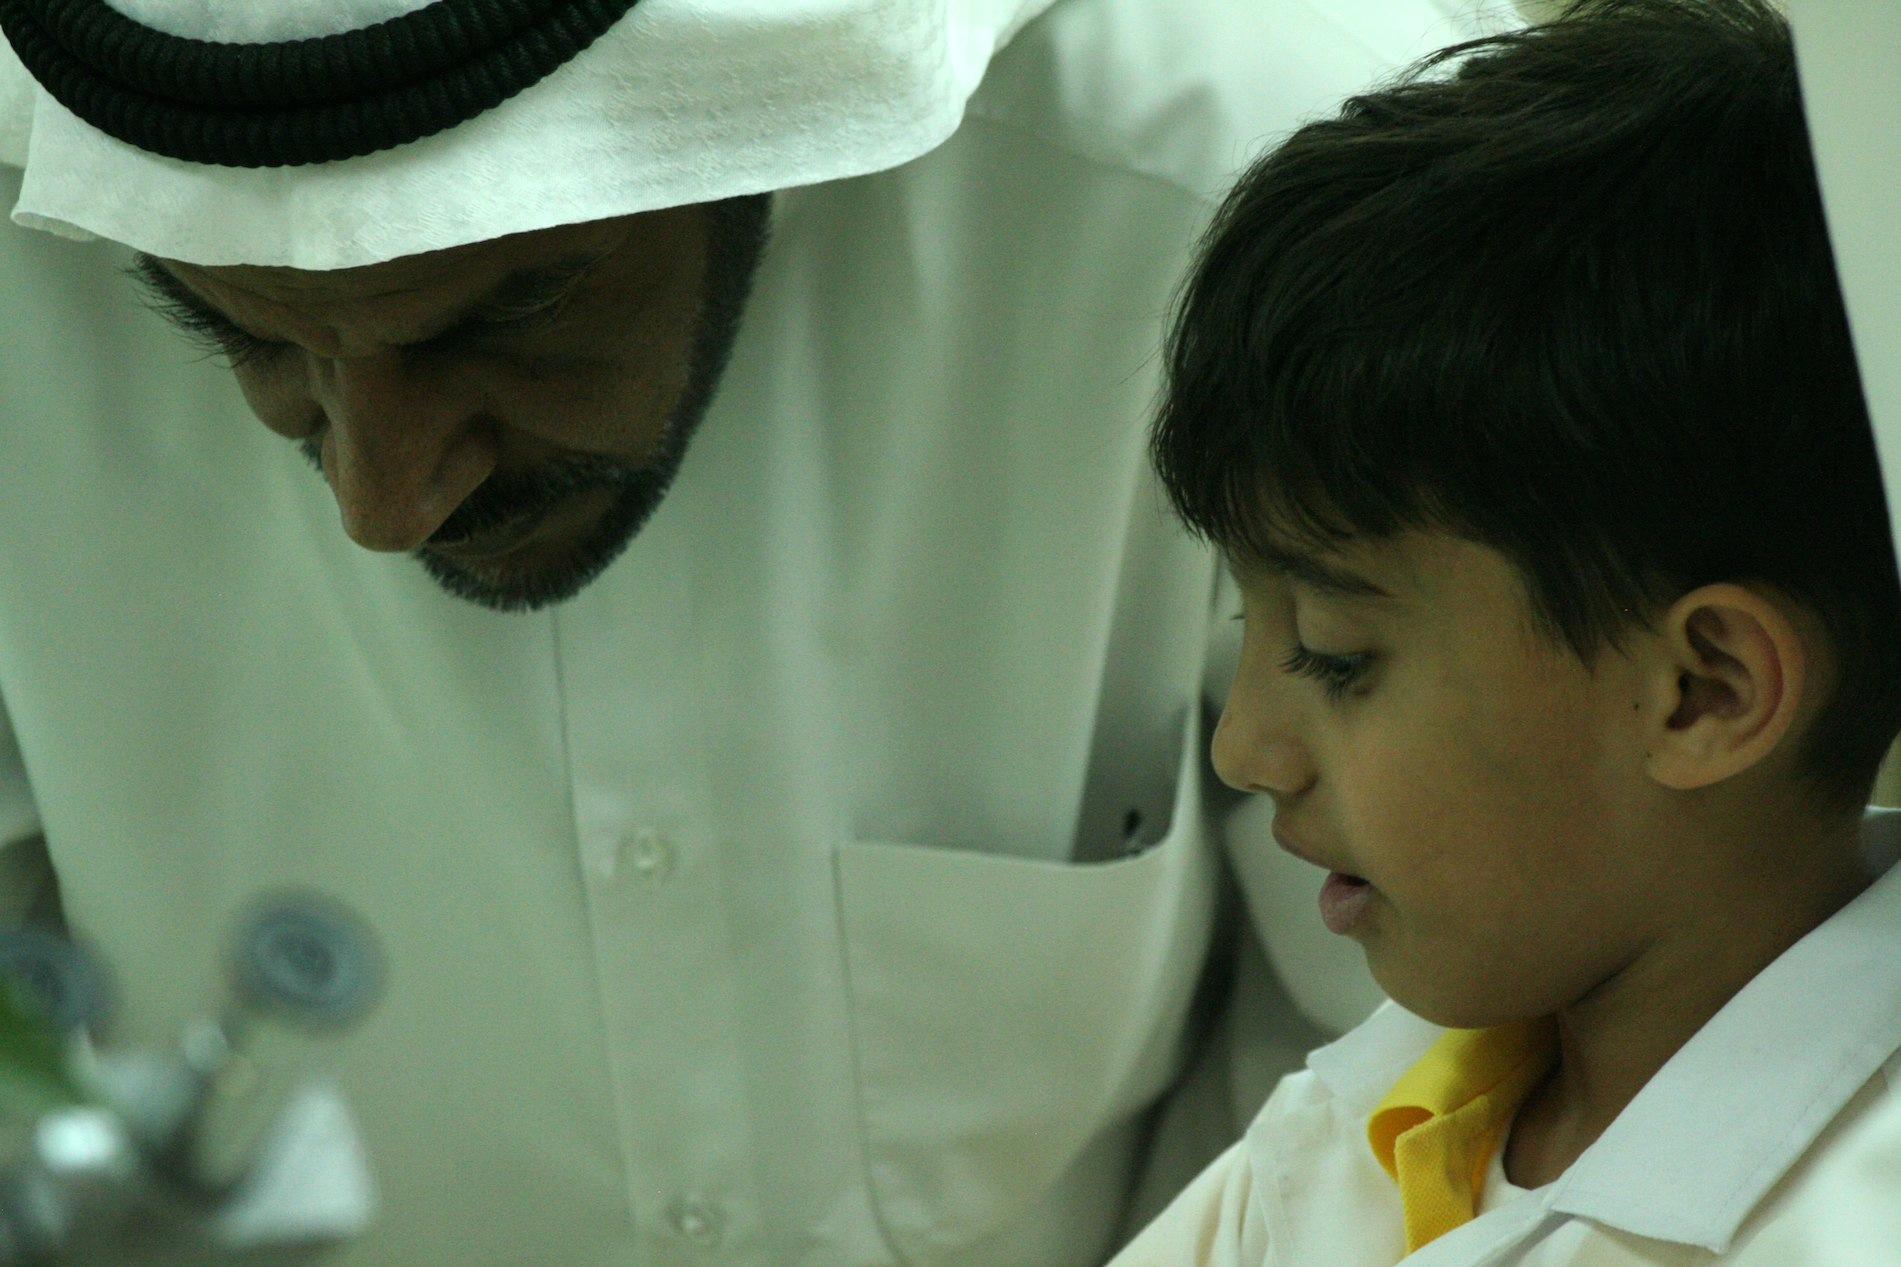 A young Kuwaiti scientist and